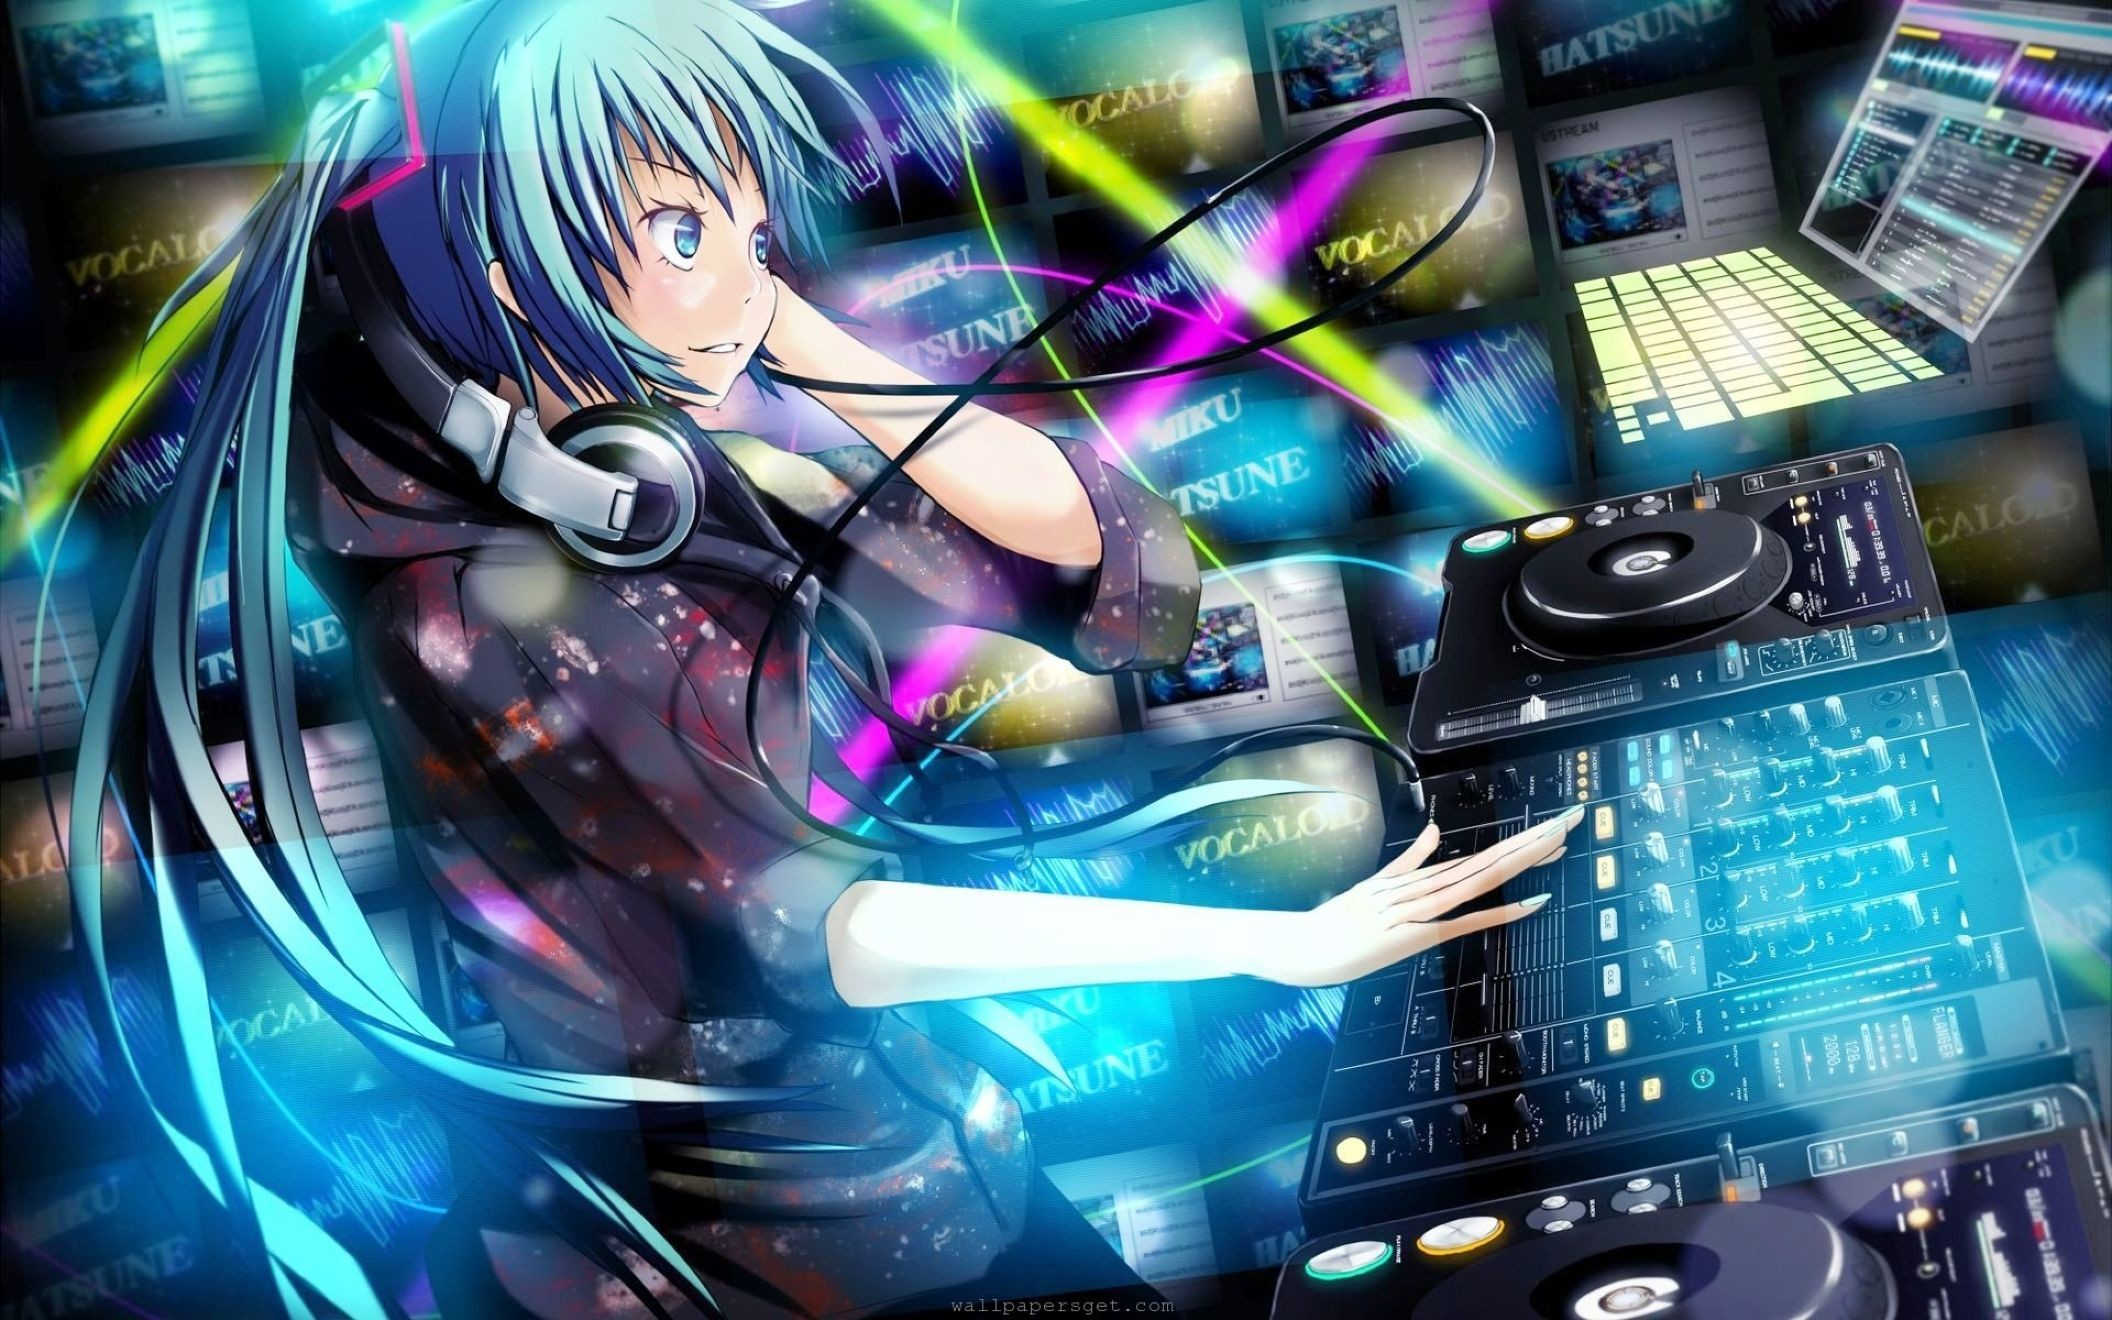 Res: 2112x1320, Anime Dj Music Wallpaper